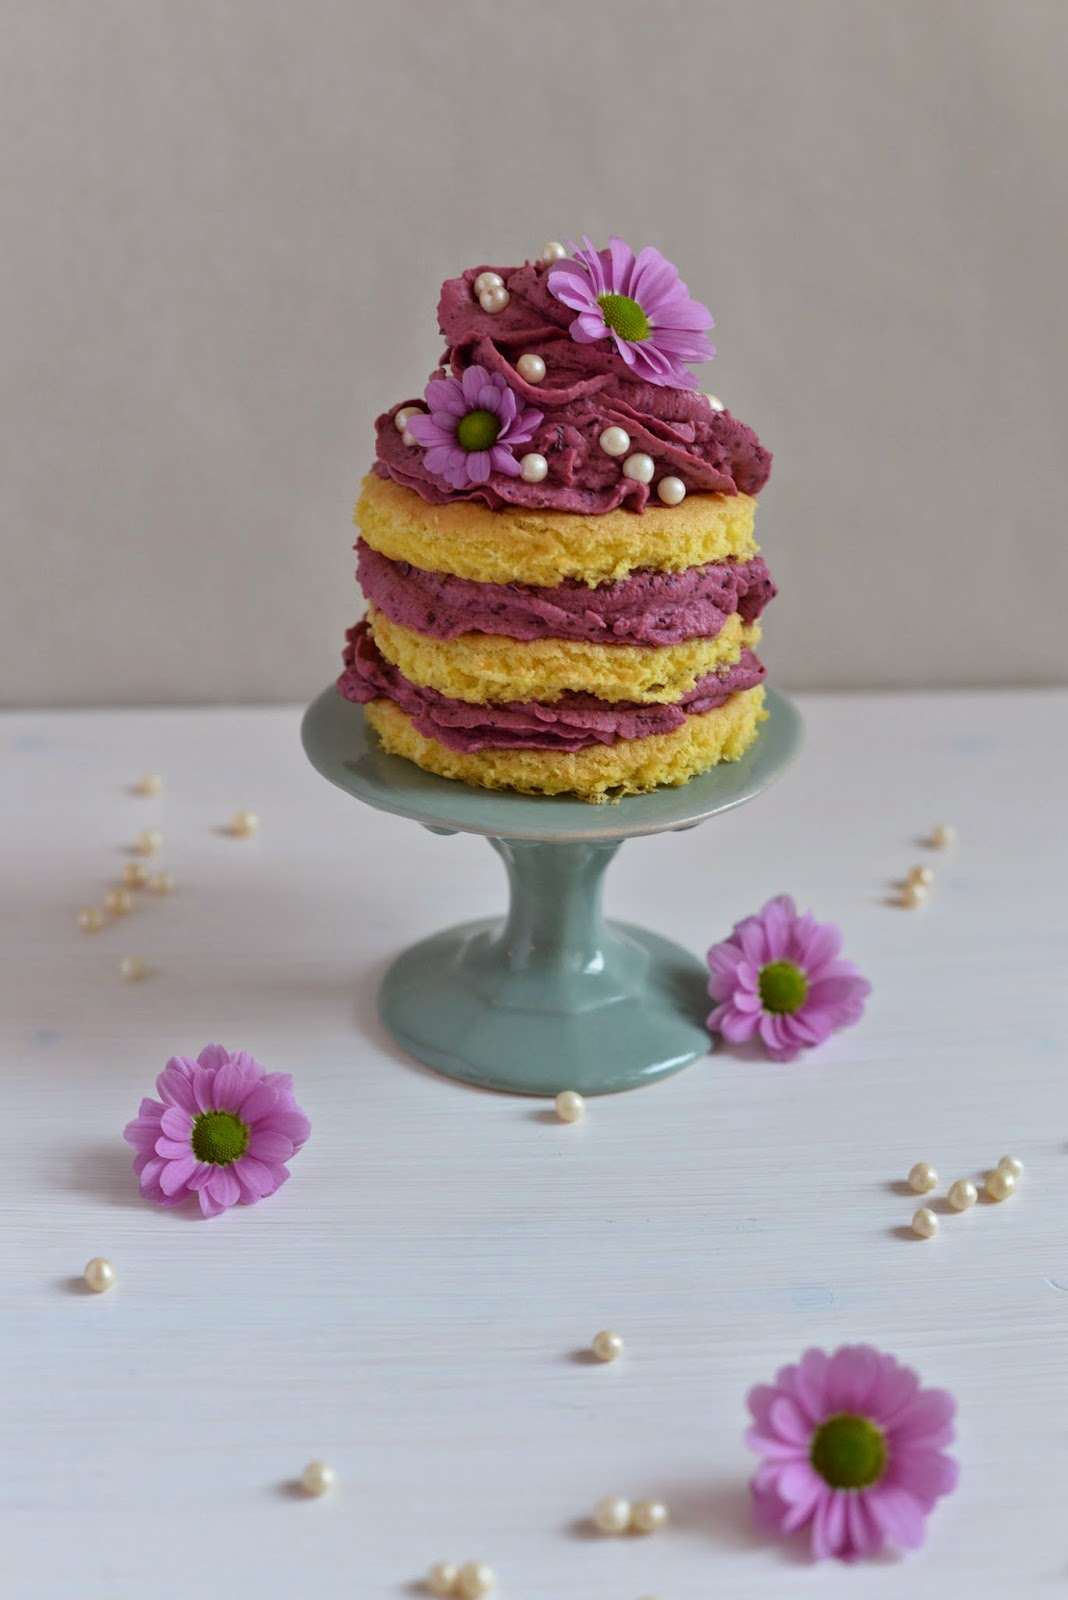 Heidelbeeren, Blaubeeren, Himbeeren, Beeren, Törtchen, Valentinstag, Frühling, Blumen, blueberries, raspberries, cake, layered cake, naked cake, valentine's day, spring, flowers, bakery, backen, baking, blog, blogger, foodblog, kipferl und krapferl, lila, lecker, yummy